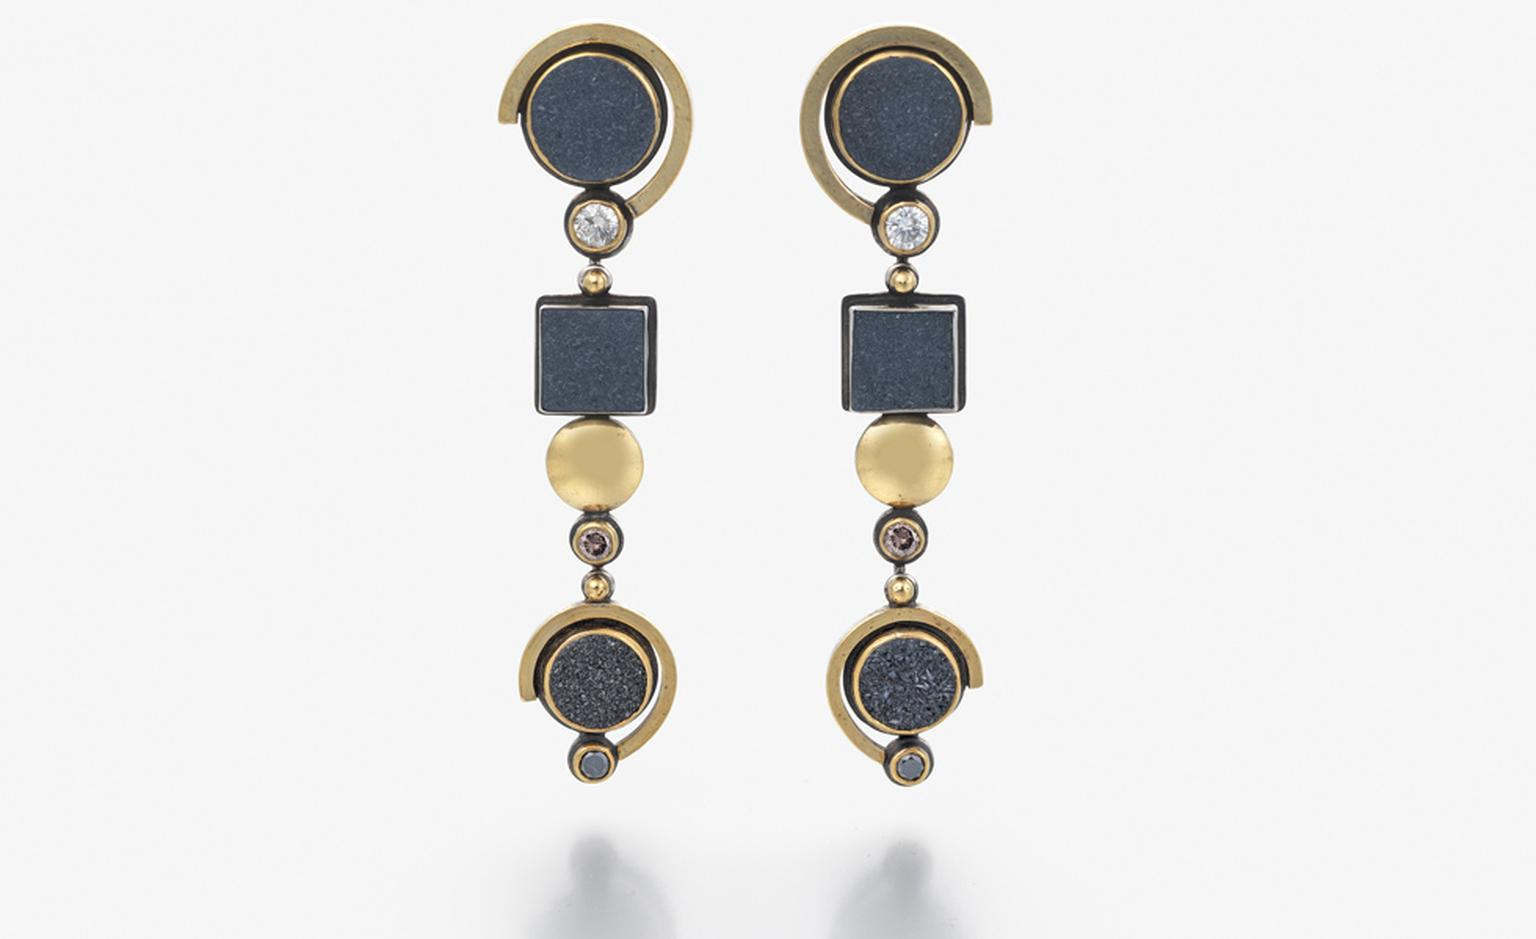 Earrings in 24 carat gold and silver set with black, brown and white diamonds and agate by Barbara Bertagnolli. Price from £2,600